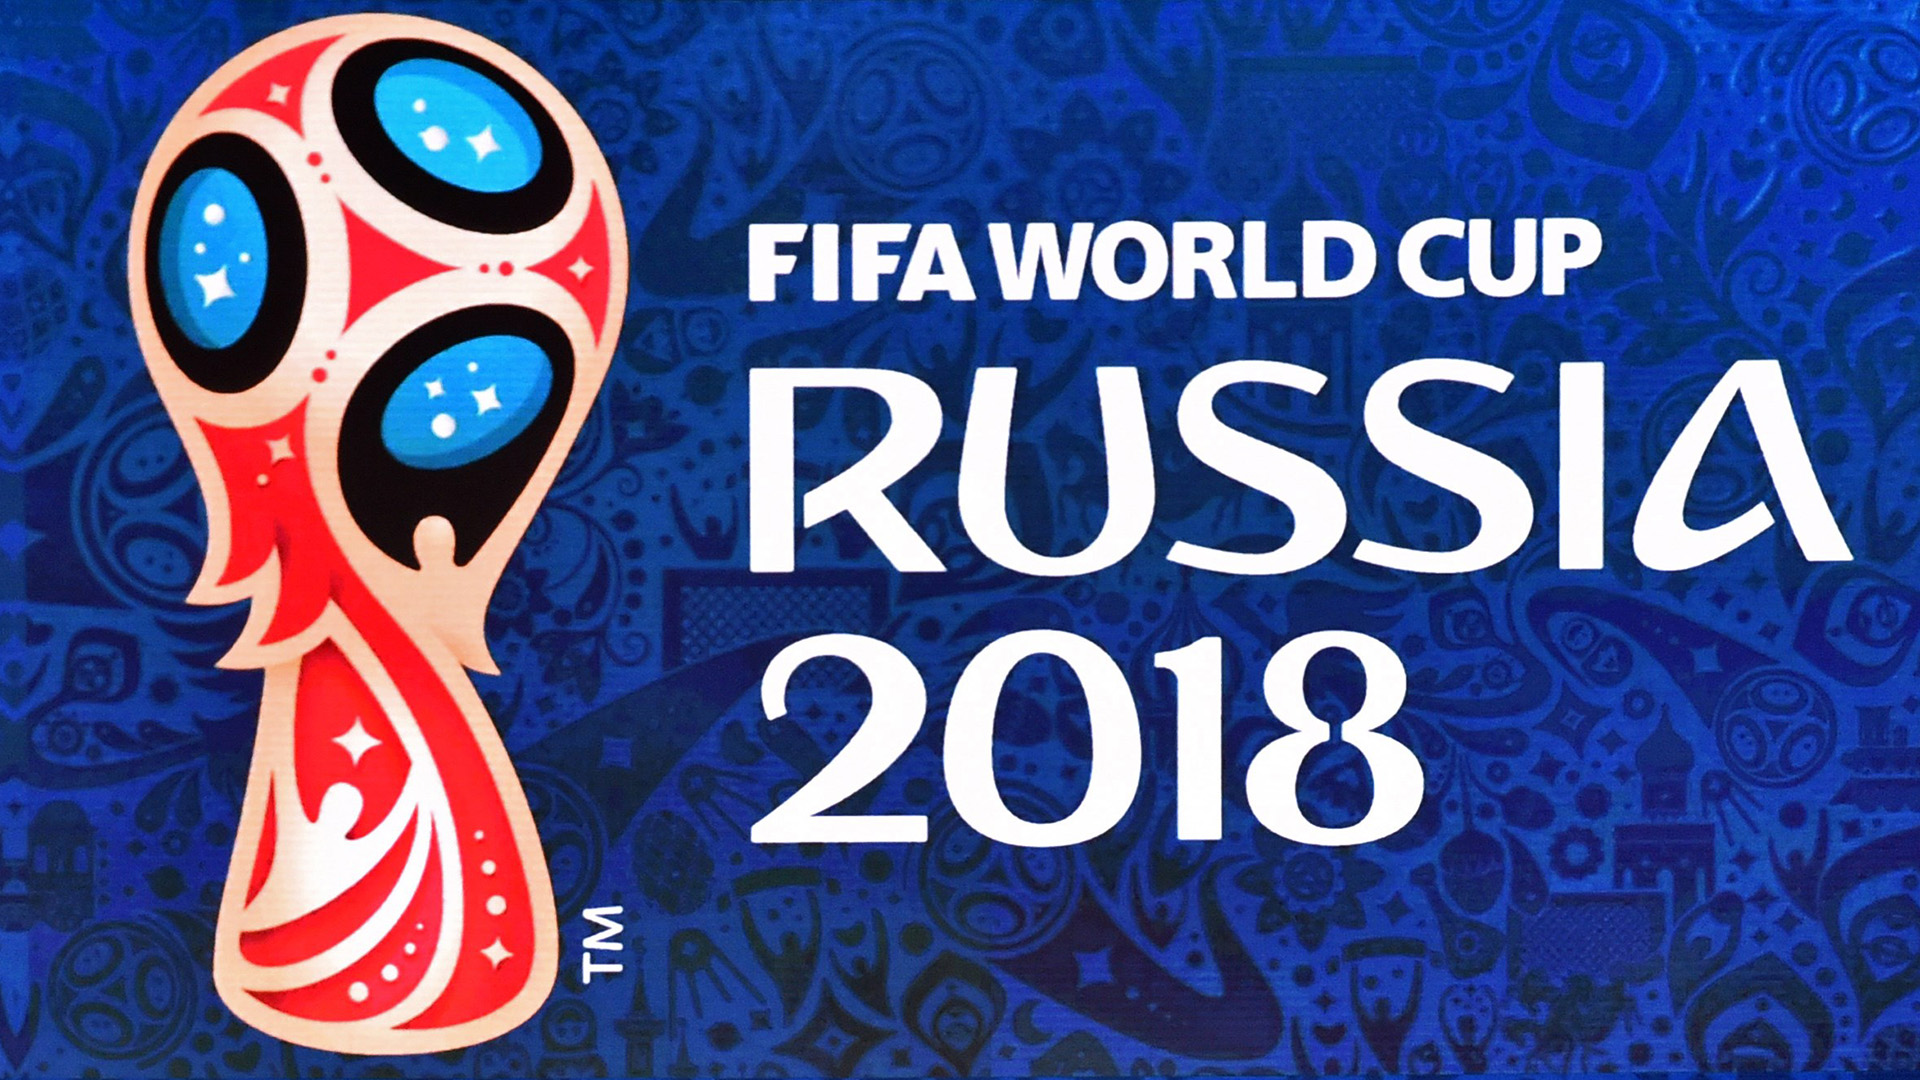 https://images.performgroup.com/di/library/GOAL/a4/c4/fifa-world-cup-draw_1pf92b06wqna61gl0sbrtsakvw.jpg?t=100214815